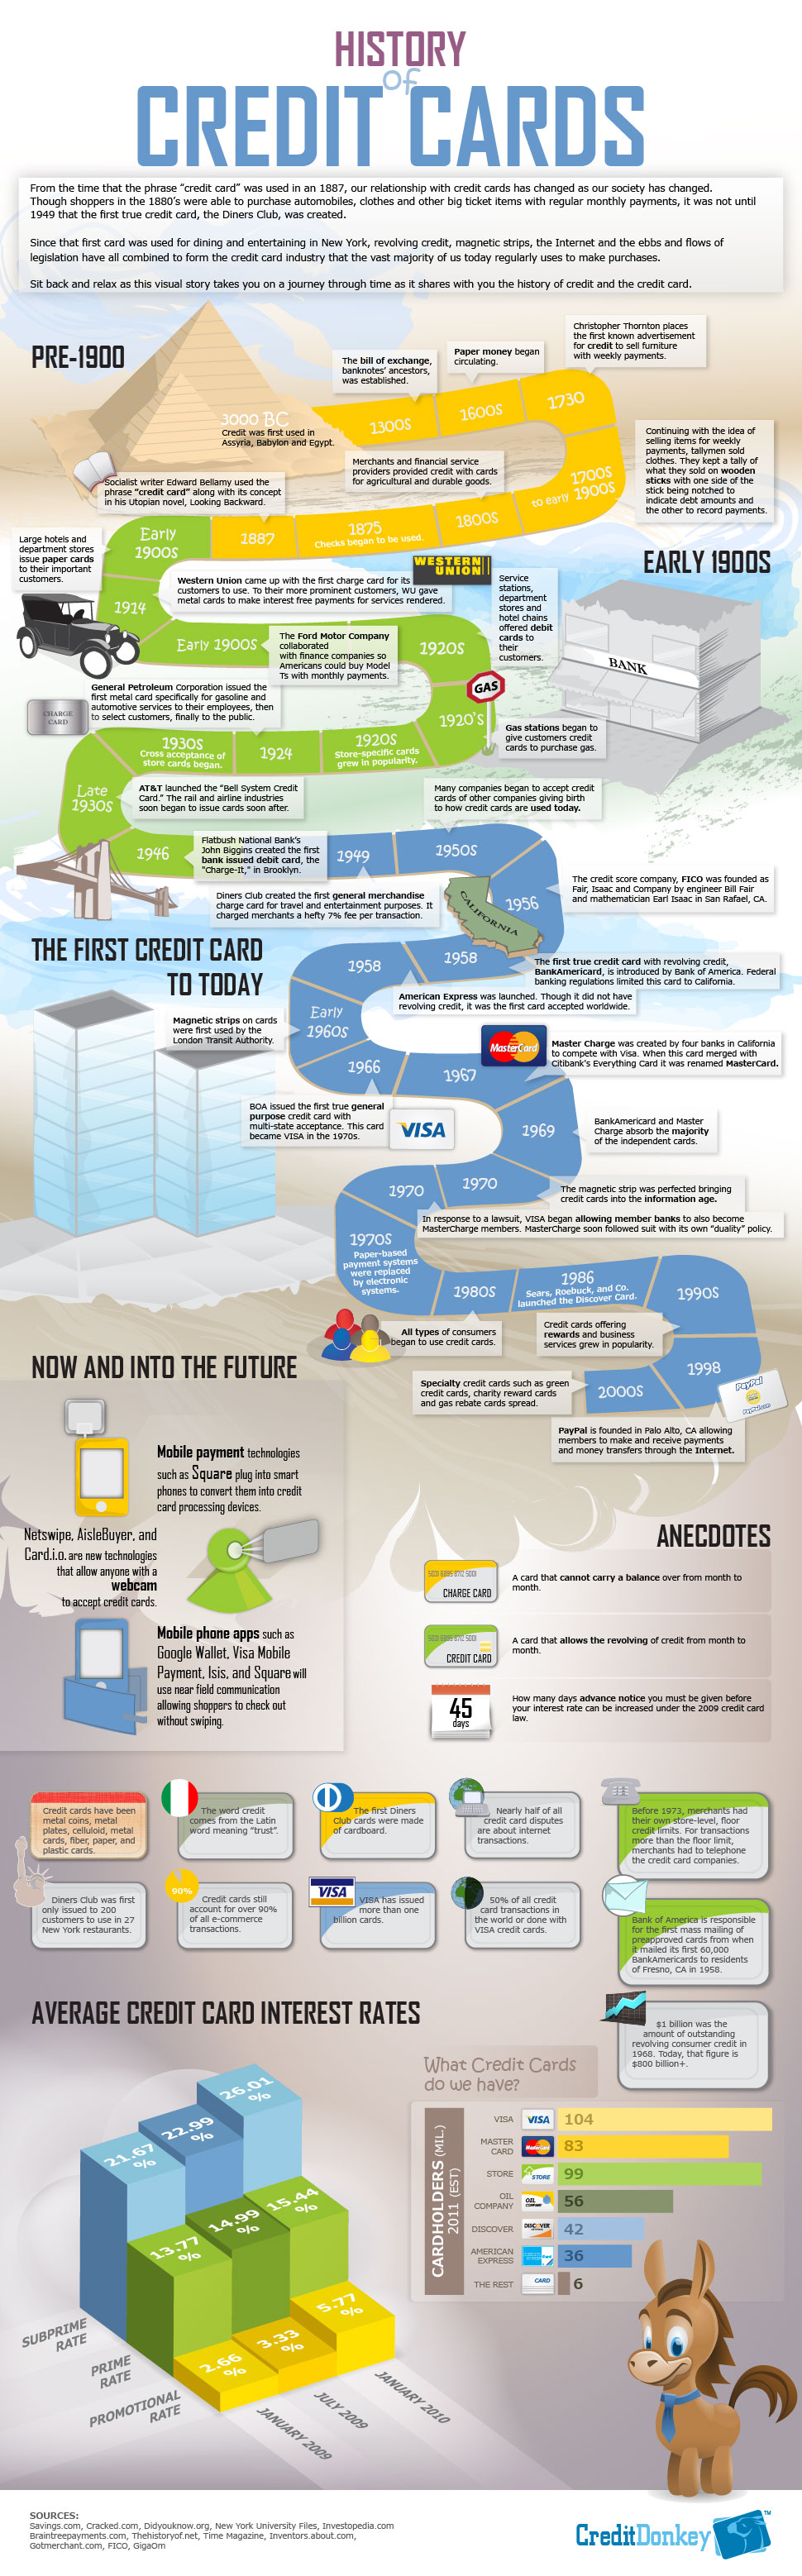 history-of-credit-cards.jpg